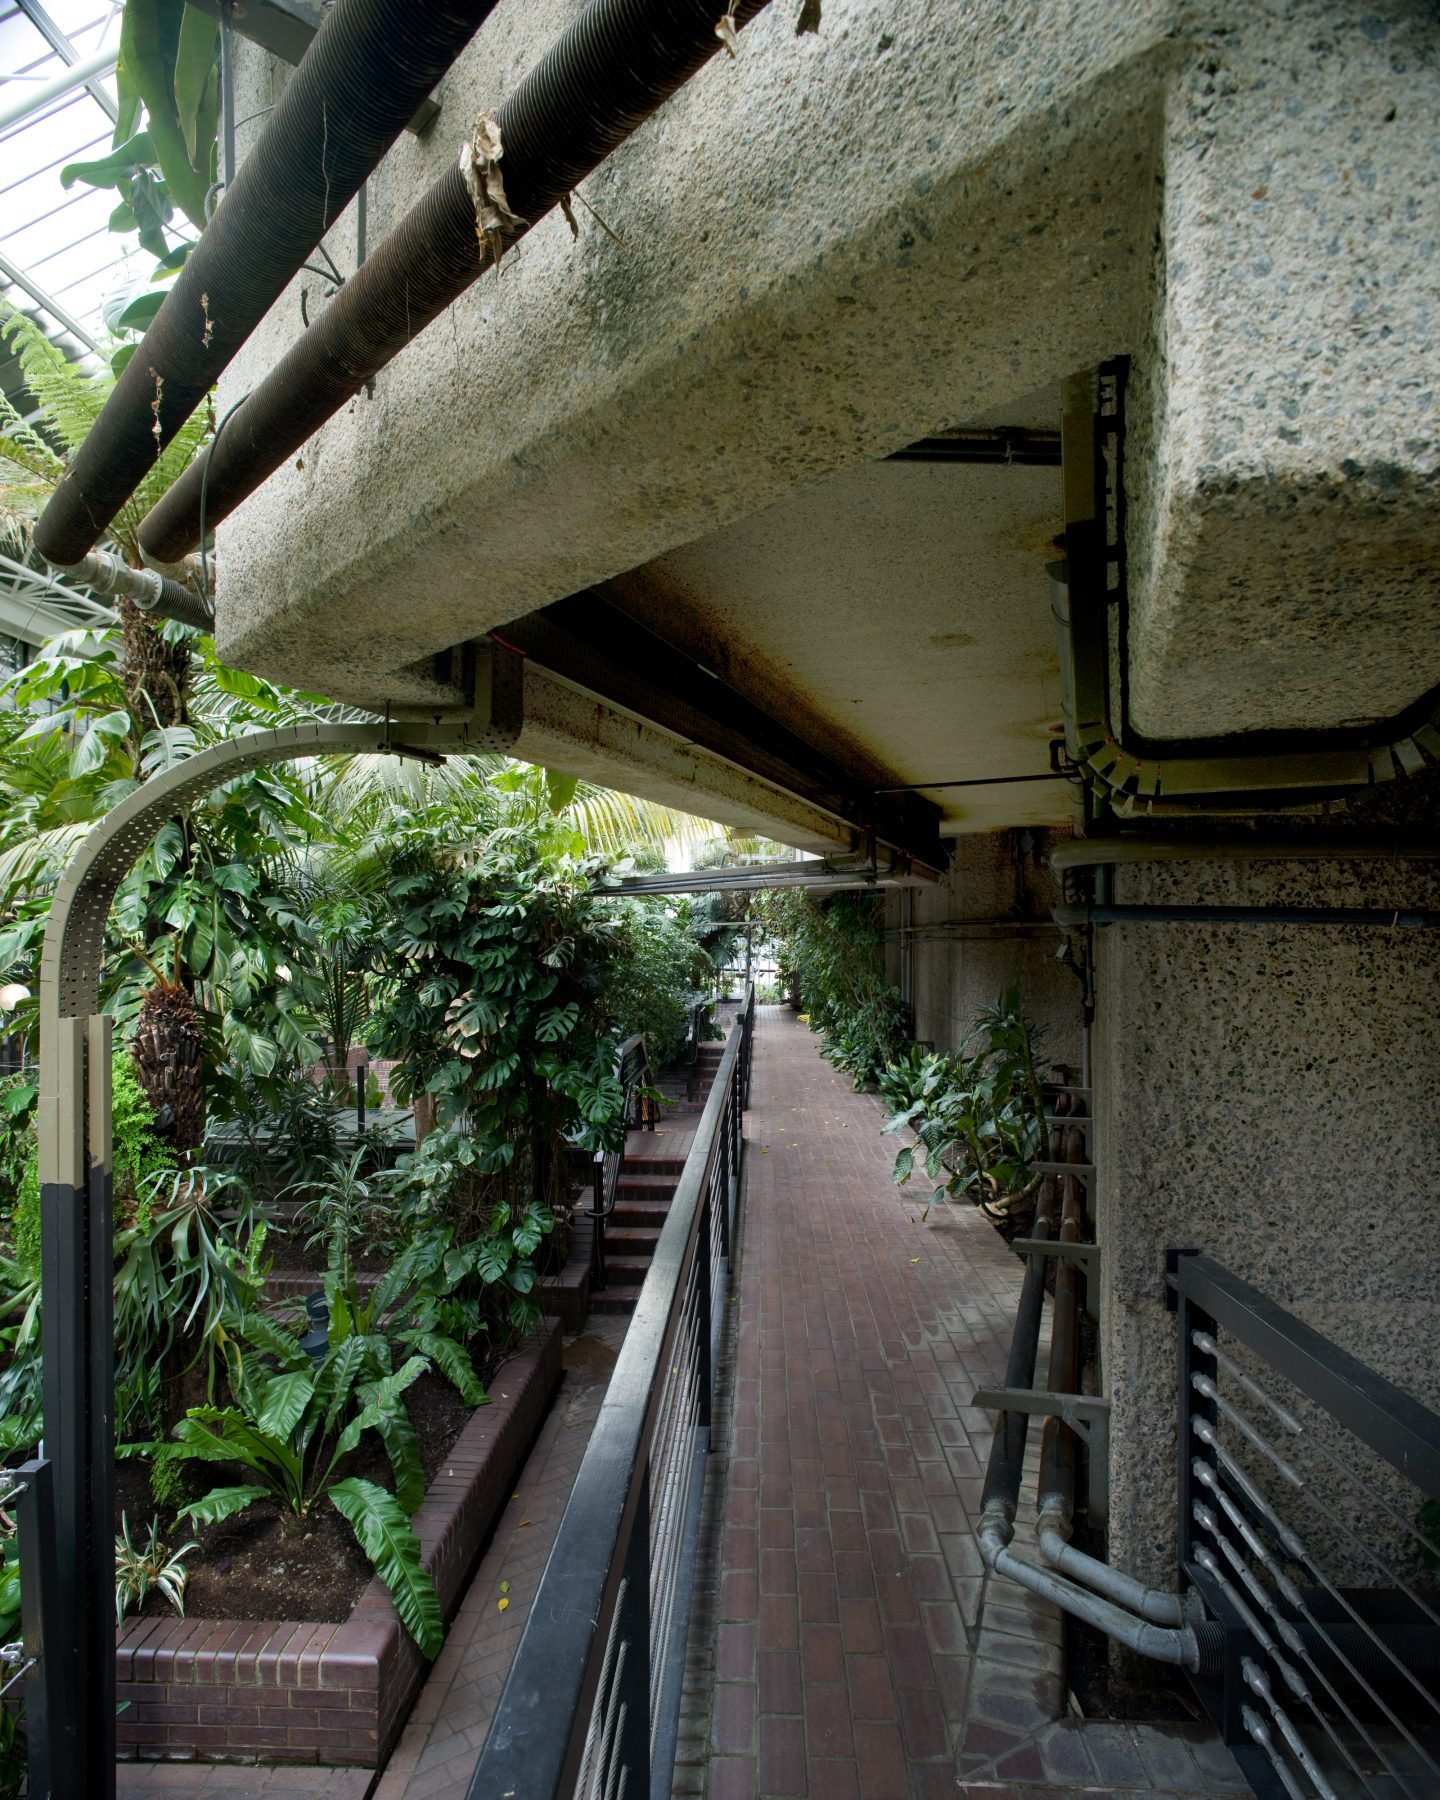 IGNANT-Travel-Luke-Hayes-The-Barbican-Conservatory-07